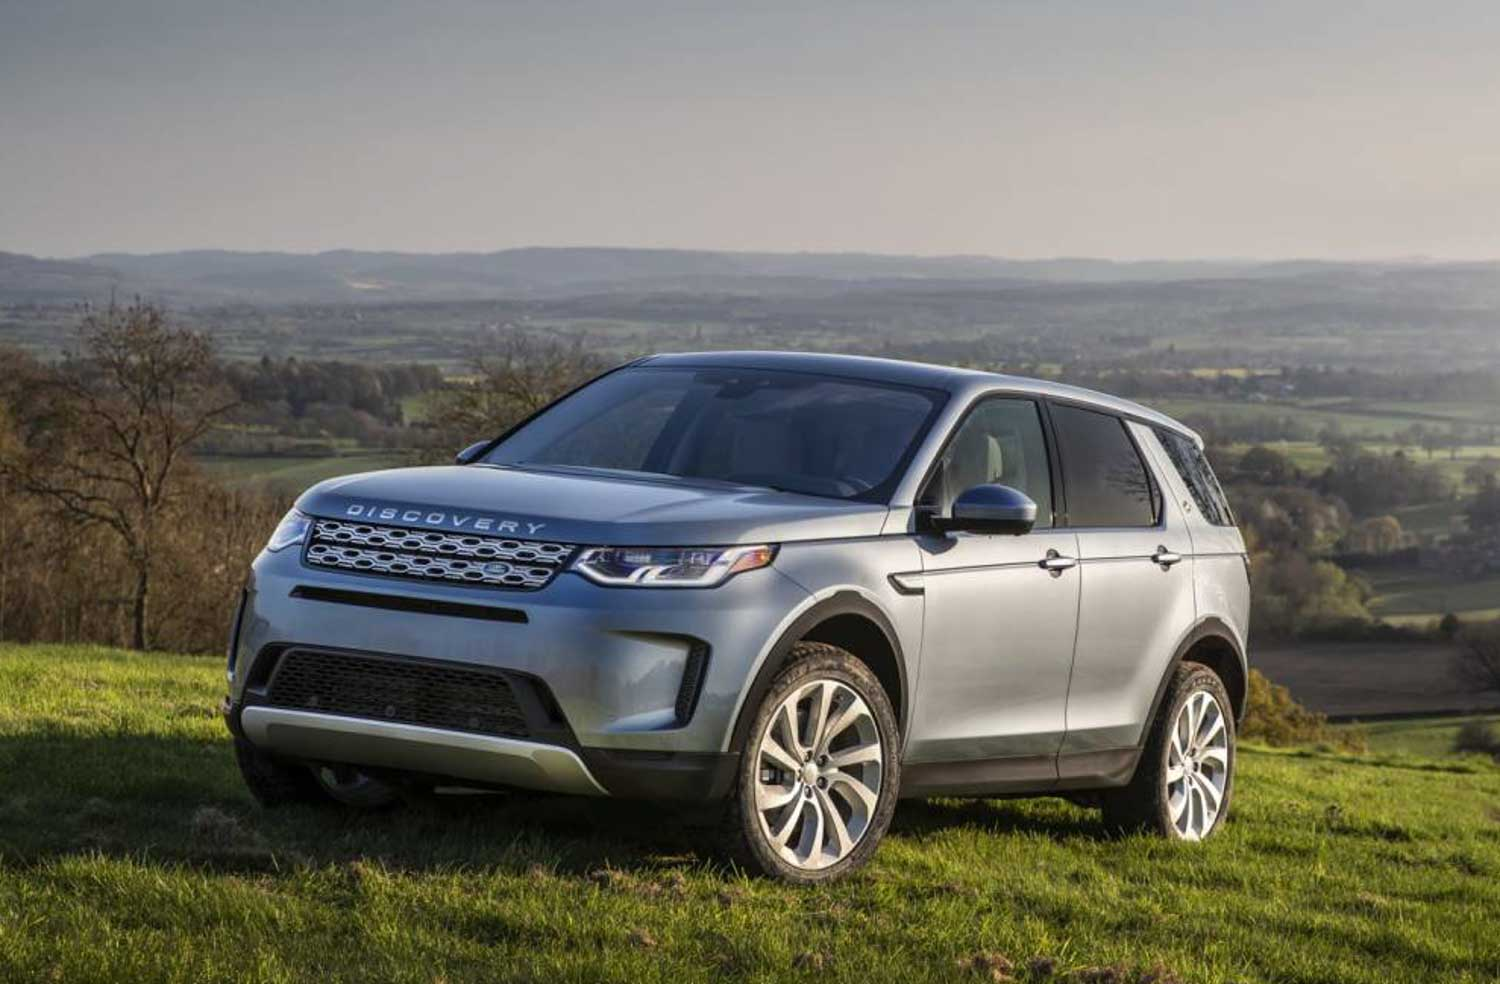 2020 Land Rover Discovery Sport Facelift Launching In India Today - GaadiWaadi.com thumbnail